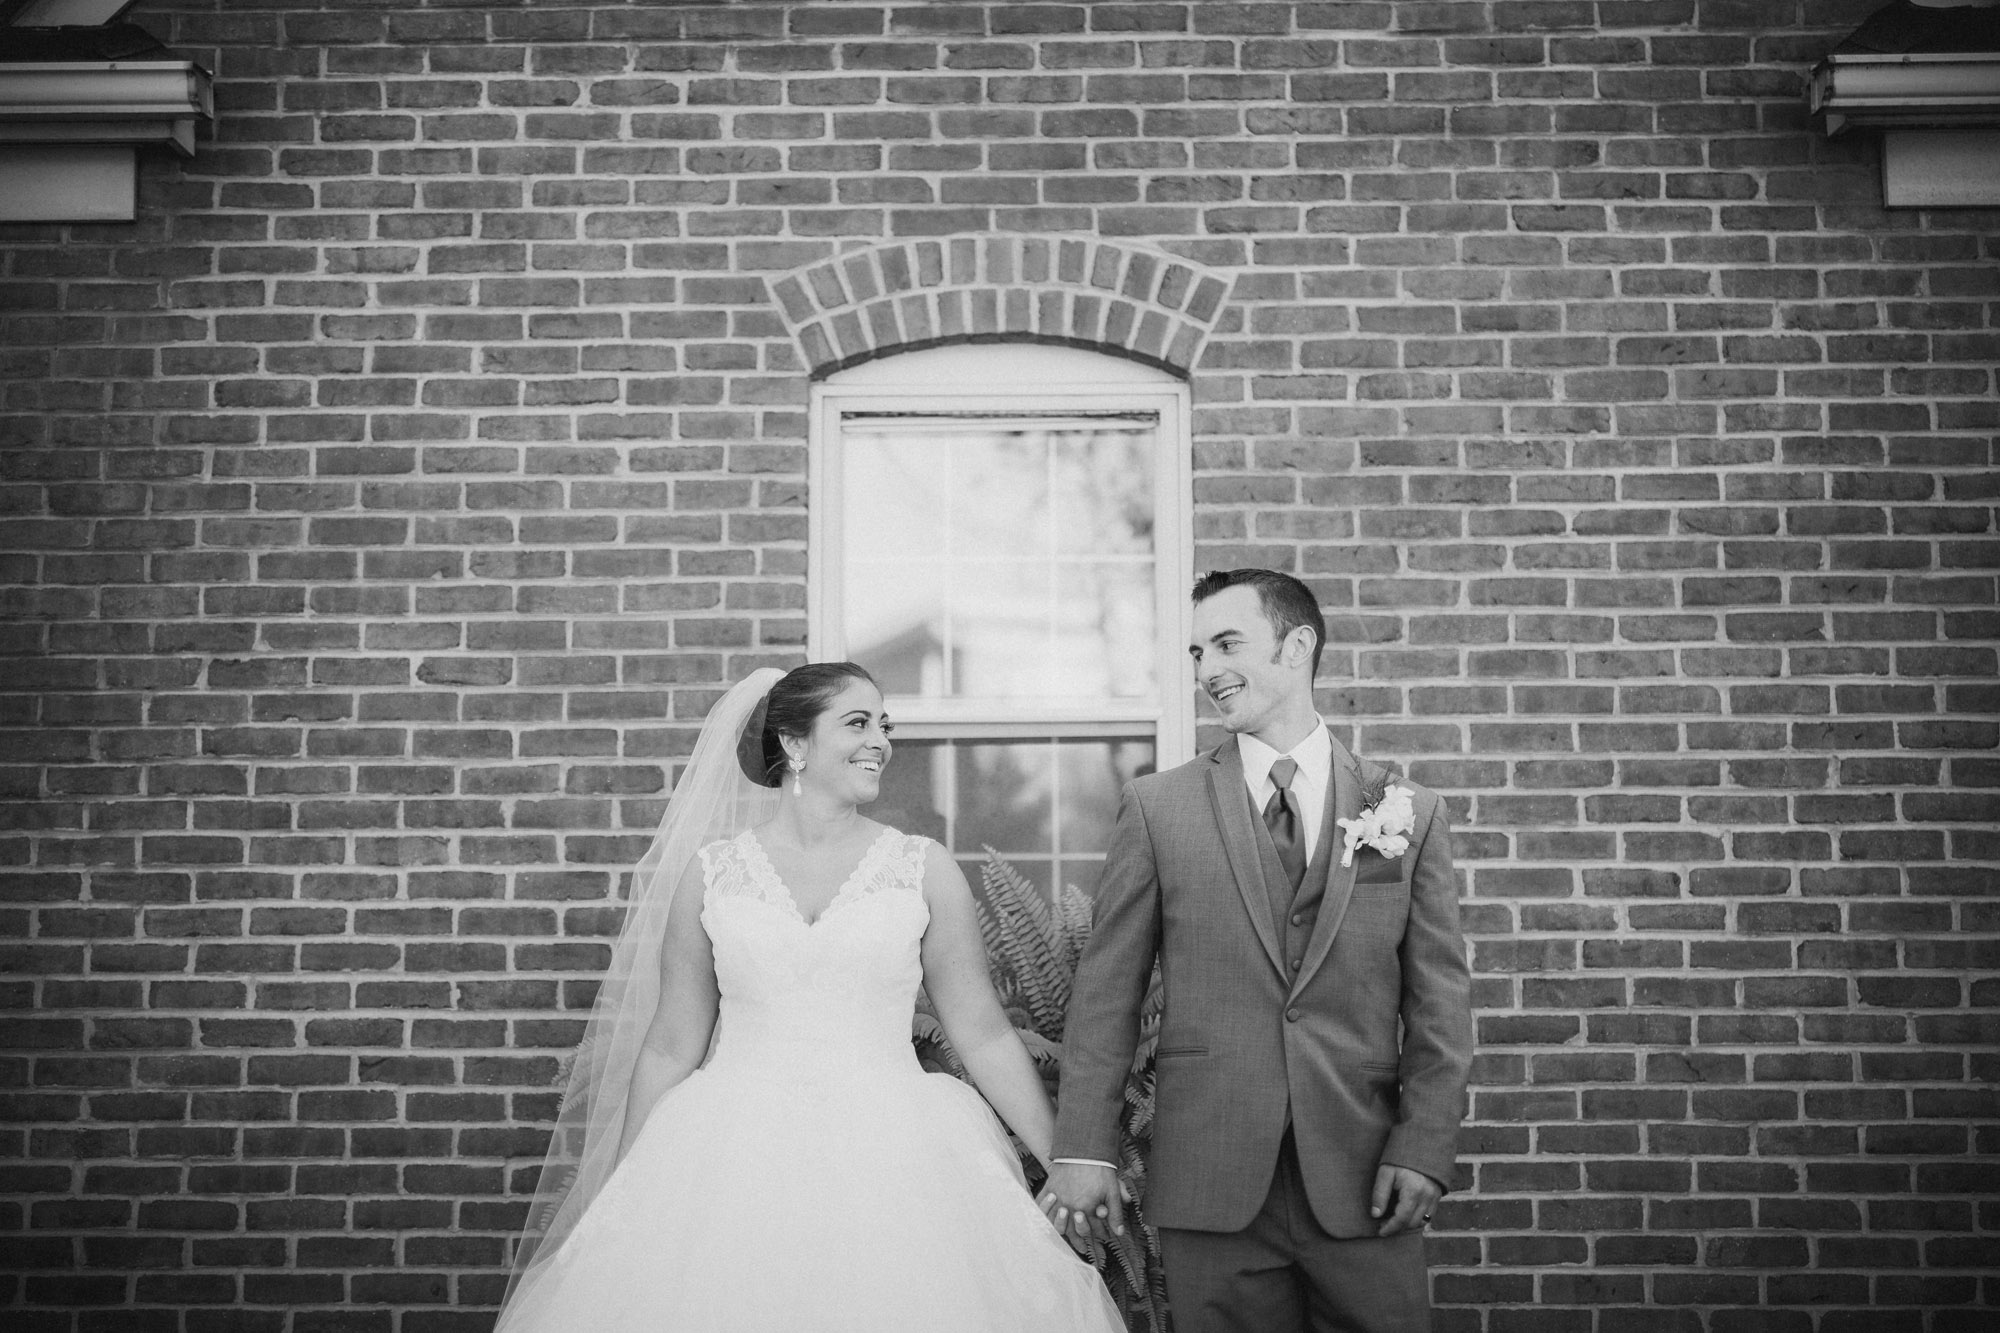 Mike & Danielle's Scranton Wedding Photography 62